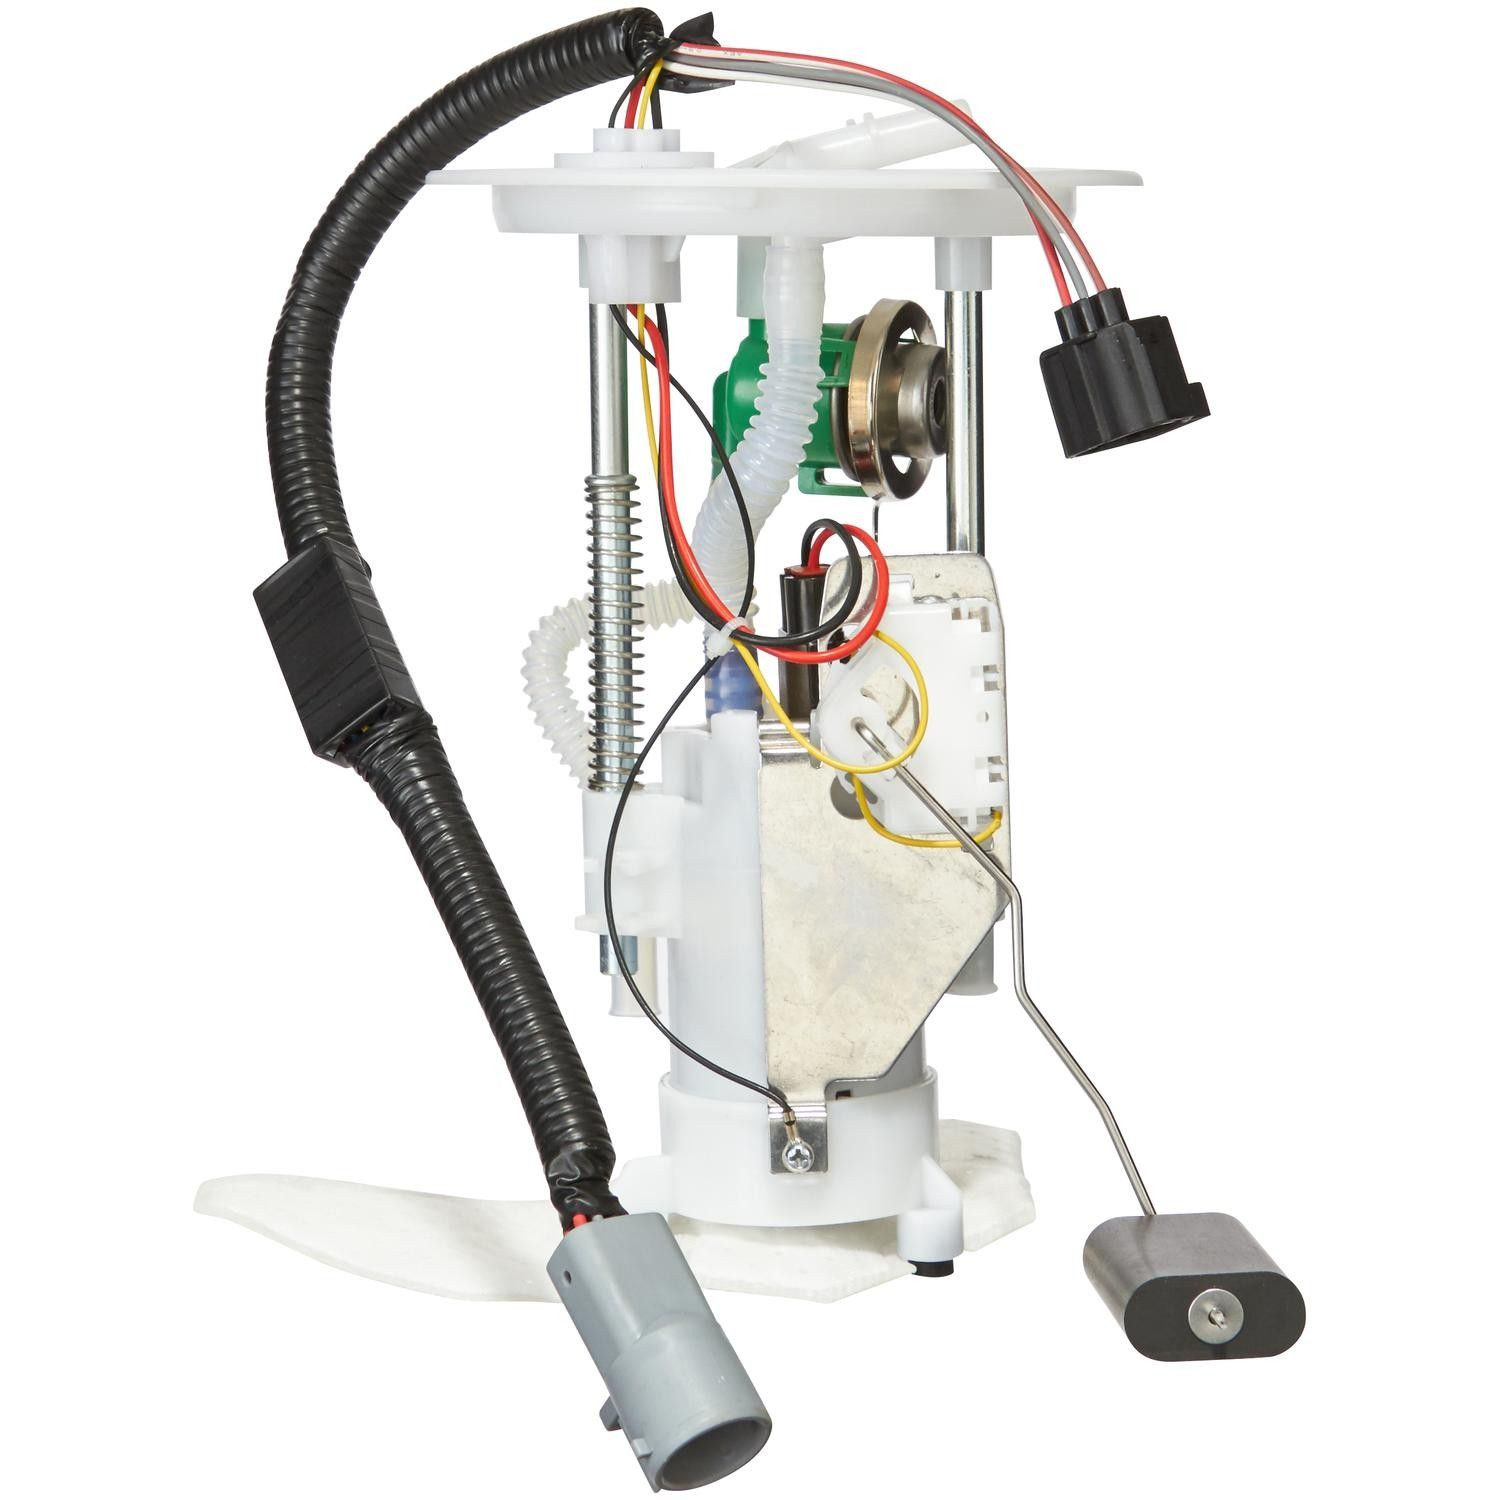 Ford Explorer Fuel Pump Module Assembly Replacement Airtex 1994 Wiring 2002 6 Cyl 40l Spectra Sp2060m